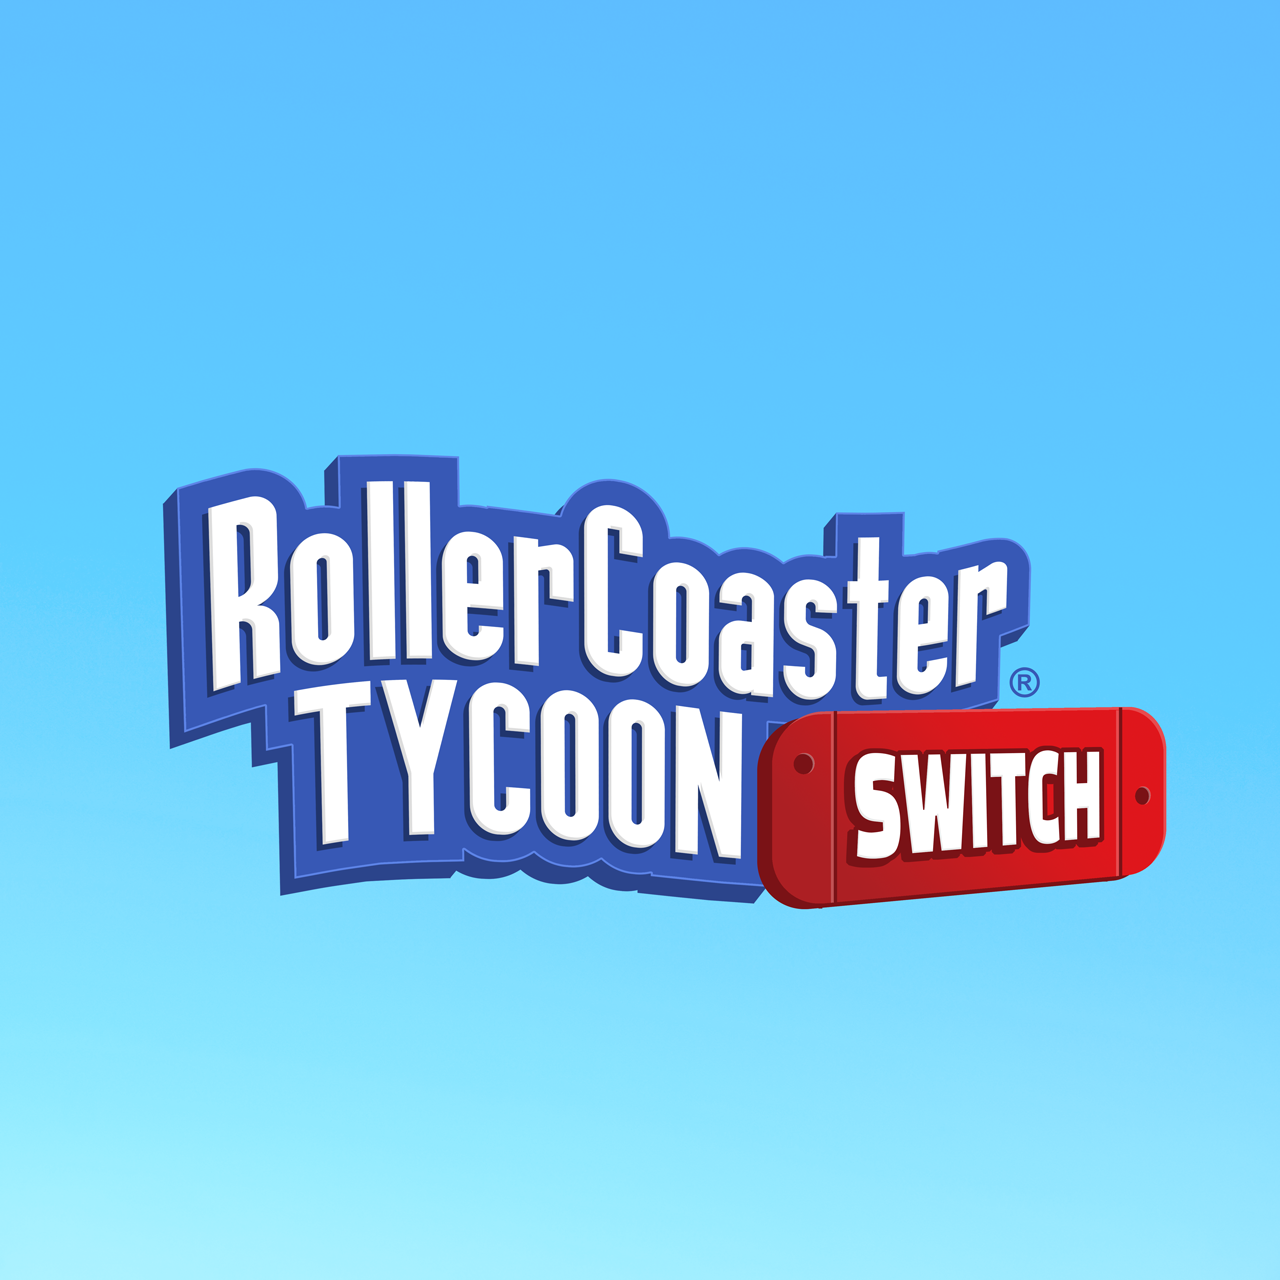 RCT Switch logo